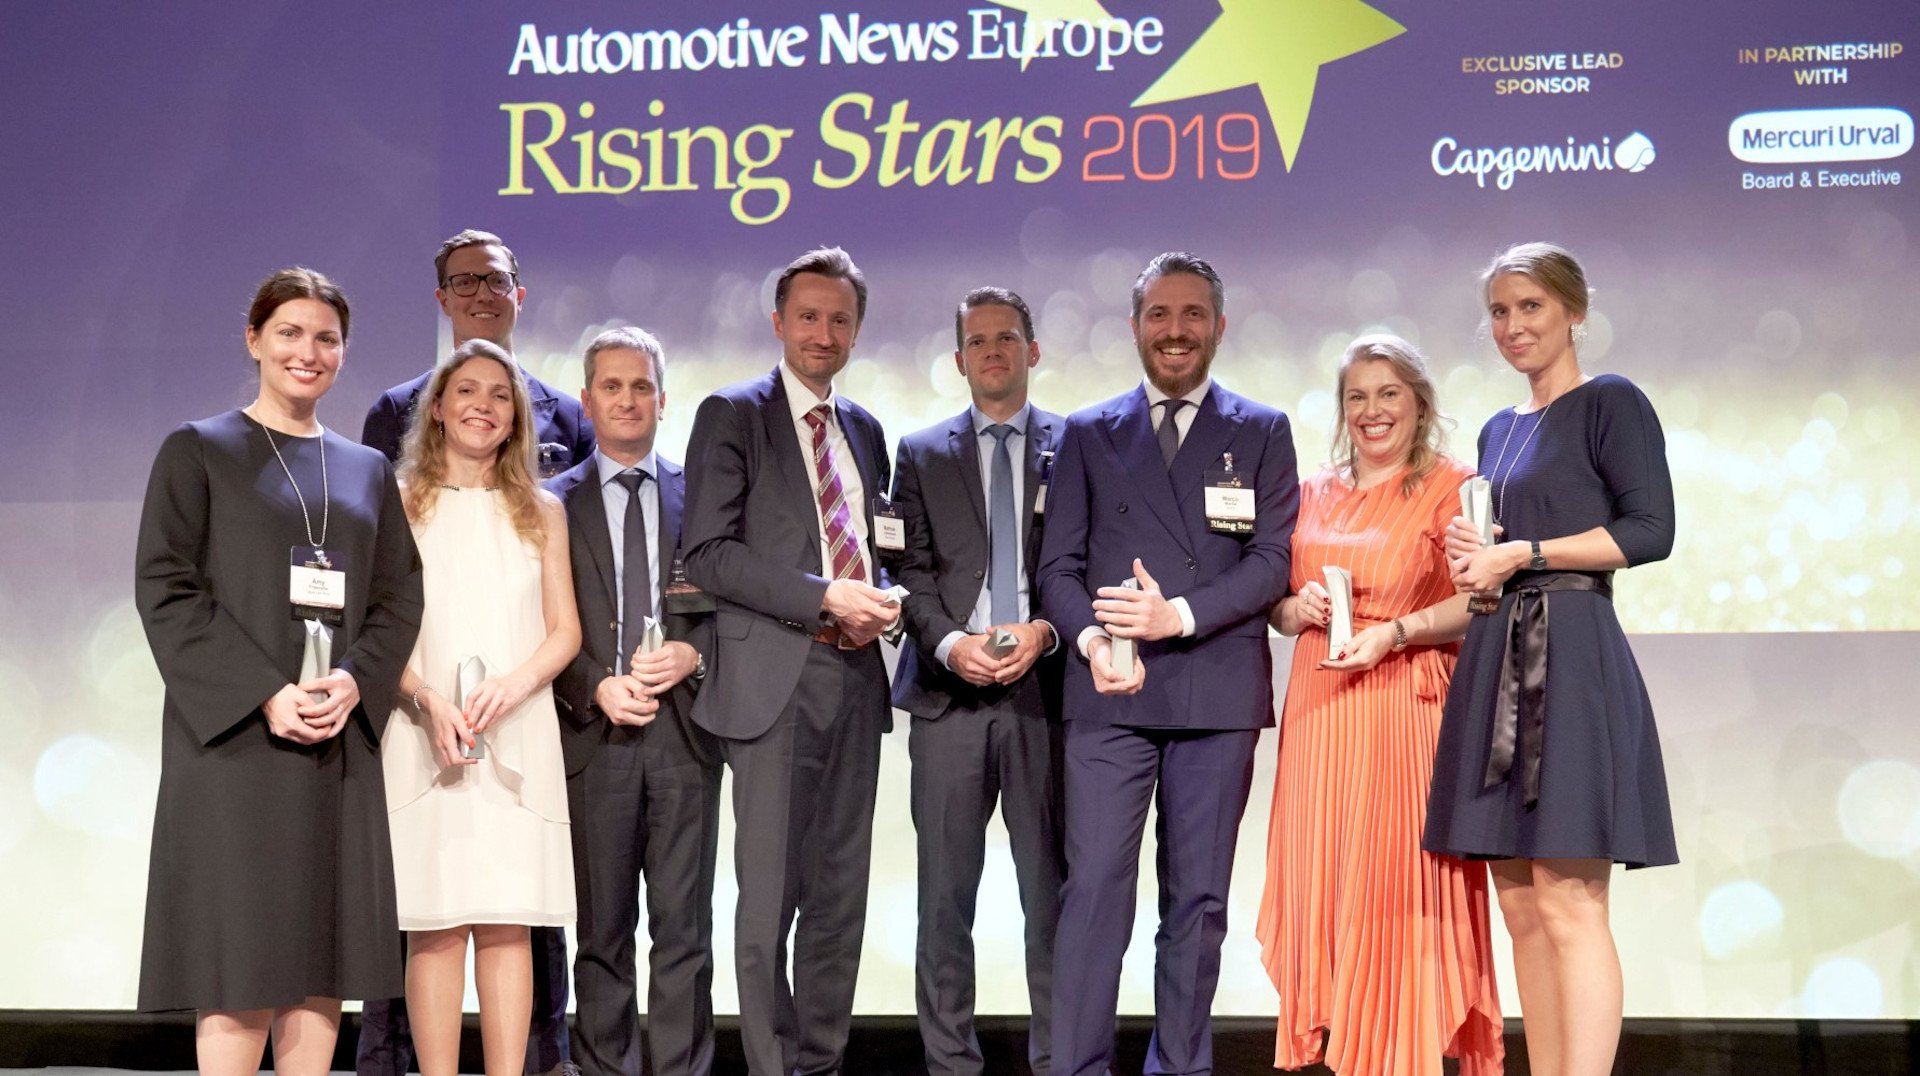 Marco Marlia named among the European automotive Rising Stars Award winners